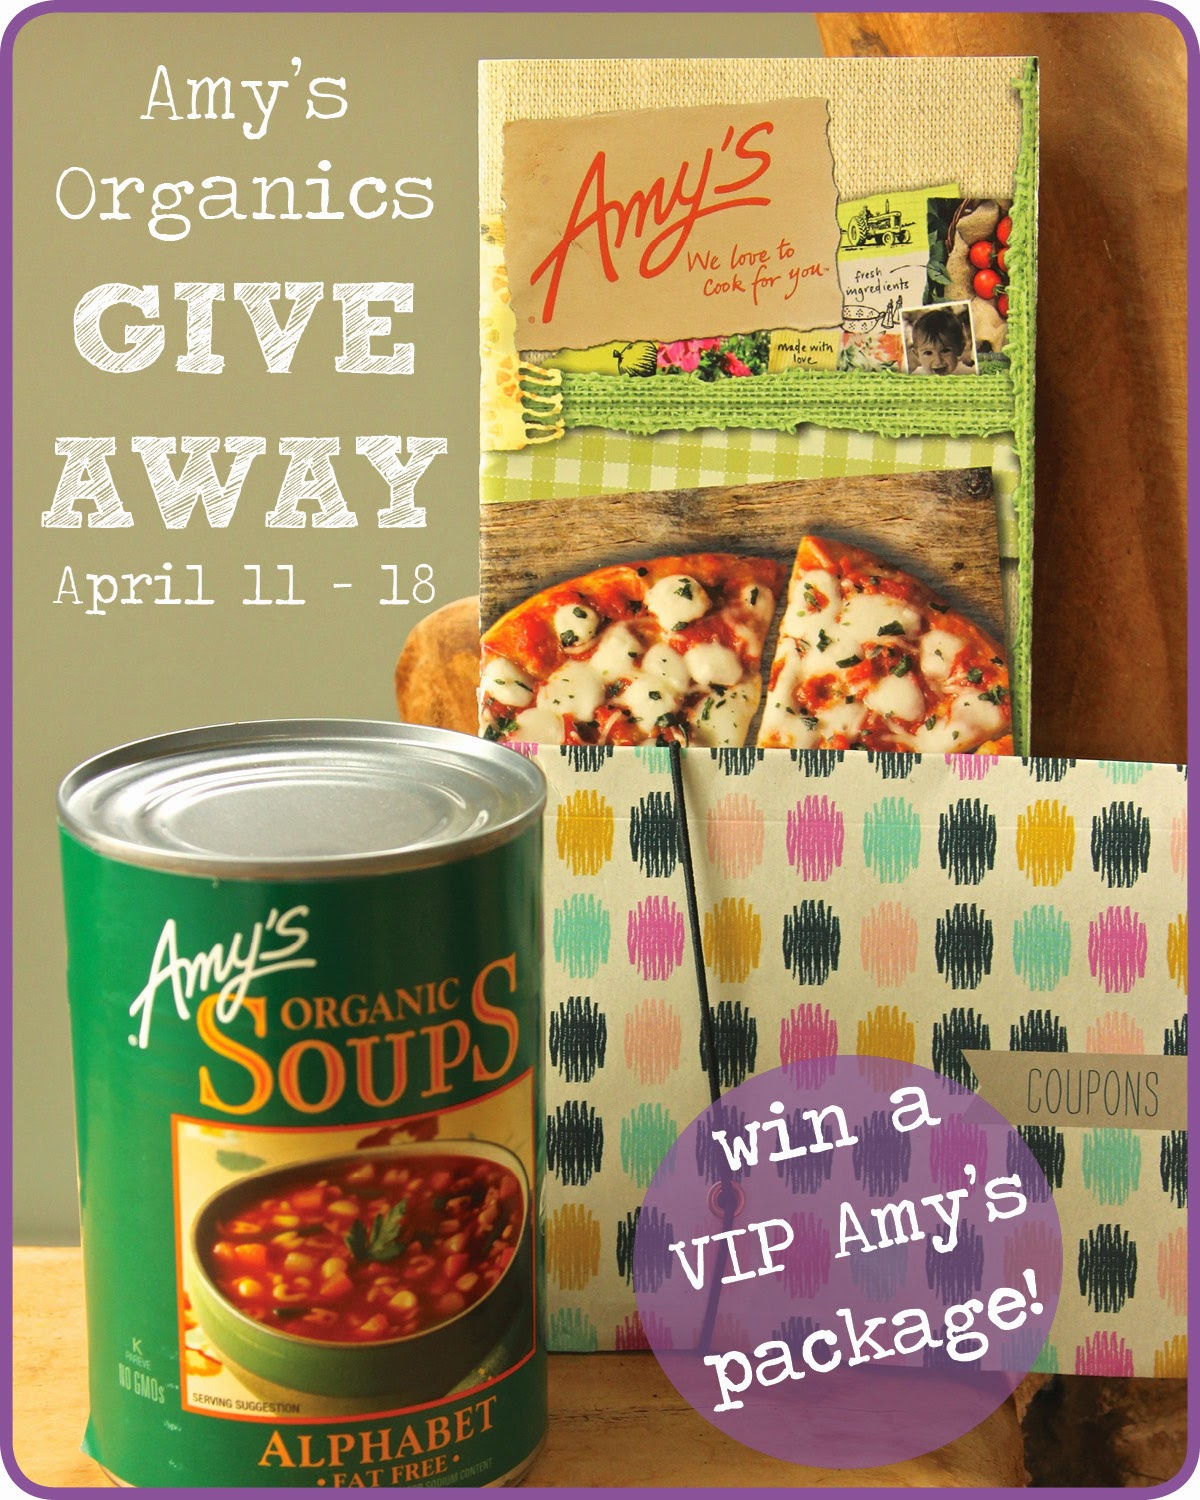 Organic Food Companies Giveaways